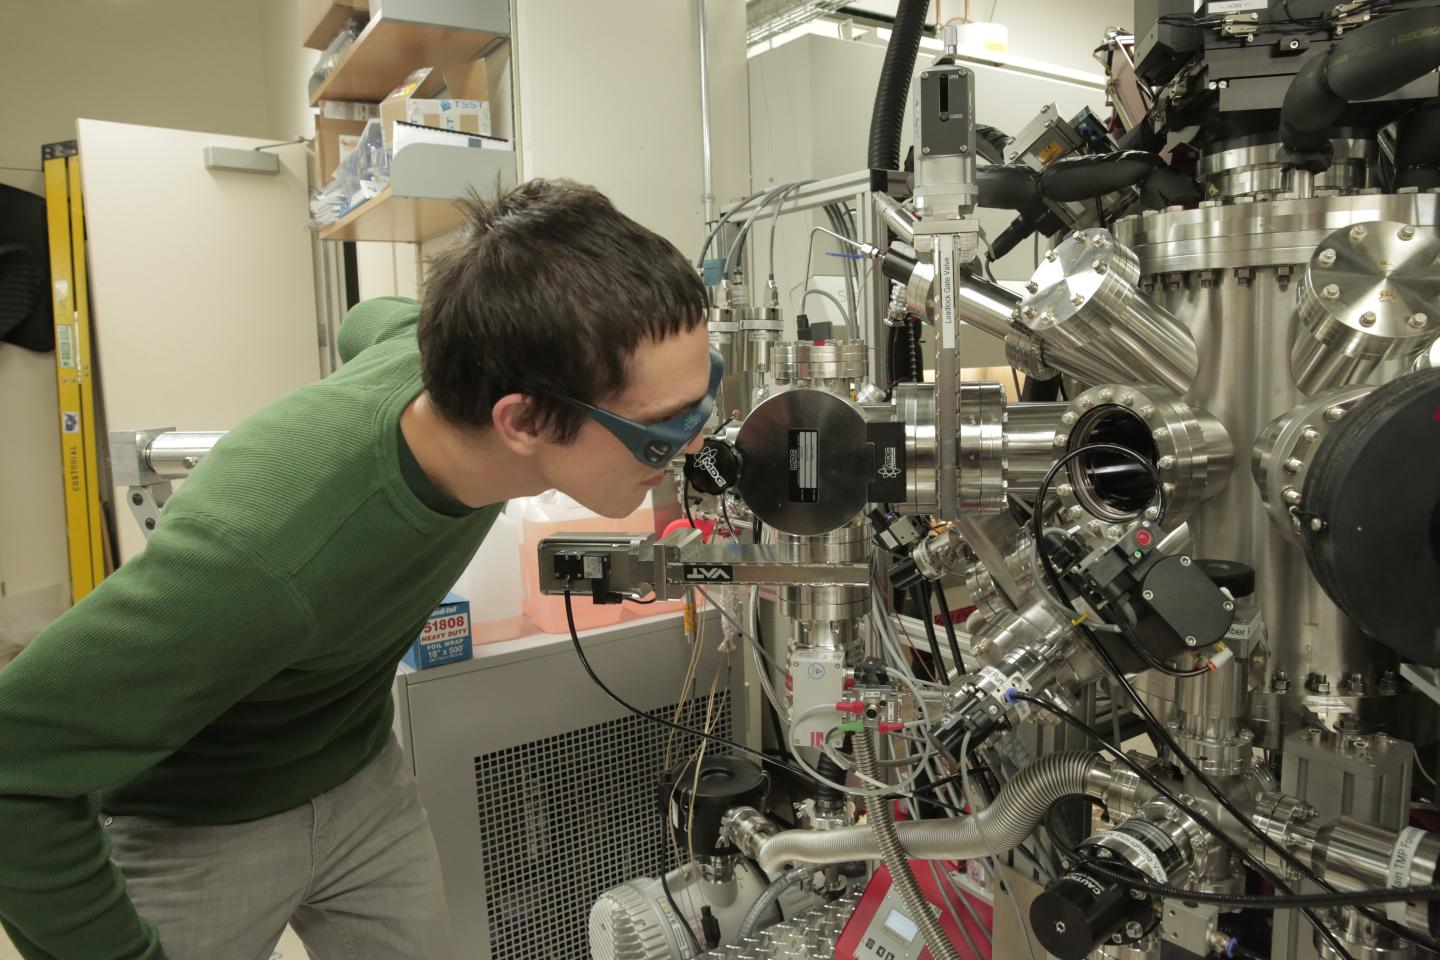 Physics graduate student Julian Irwin checks equipment in the lab of materials science and engineering Professor Chang-Beom Eom, where researchers have produced a material that could exhibit the best qualities of both solid-state and spinning disk digital storage. Source: SARAH PAGE